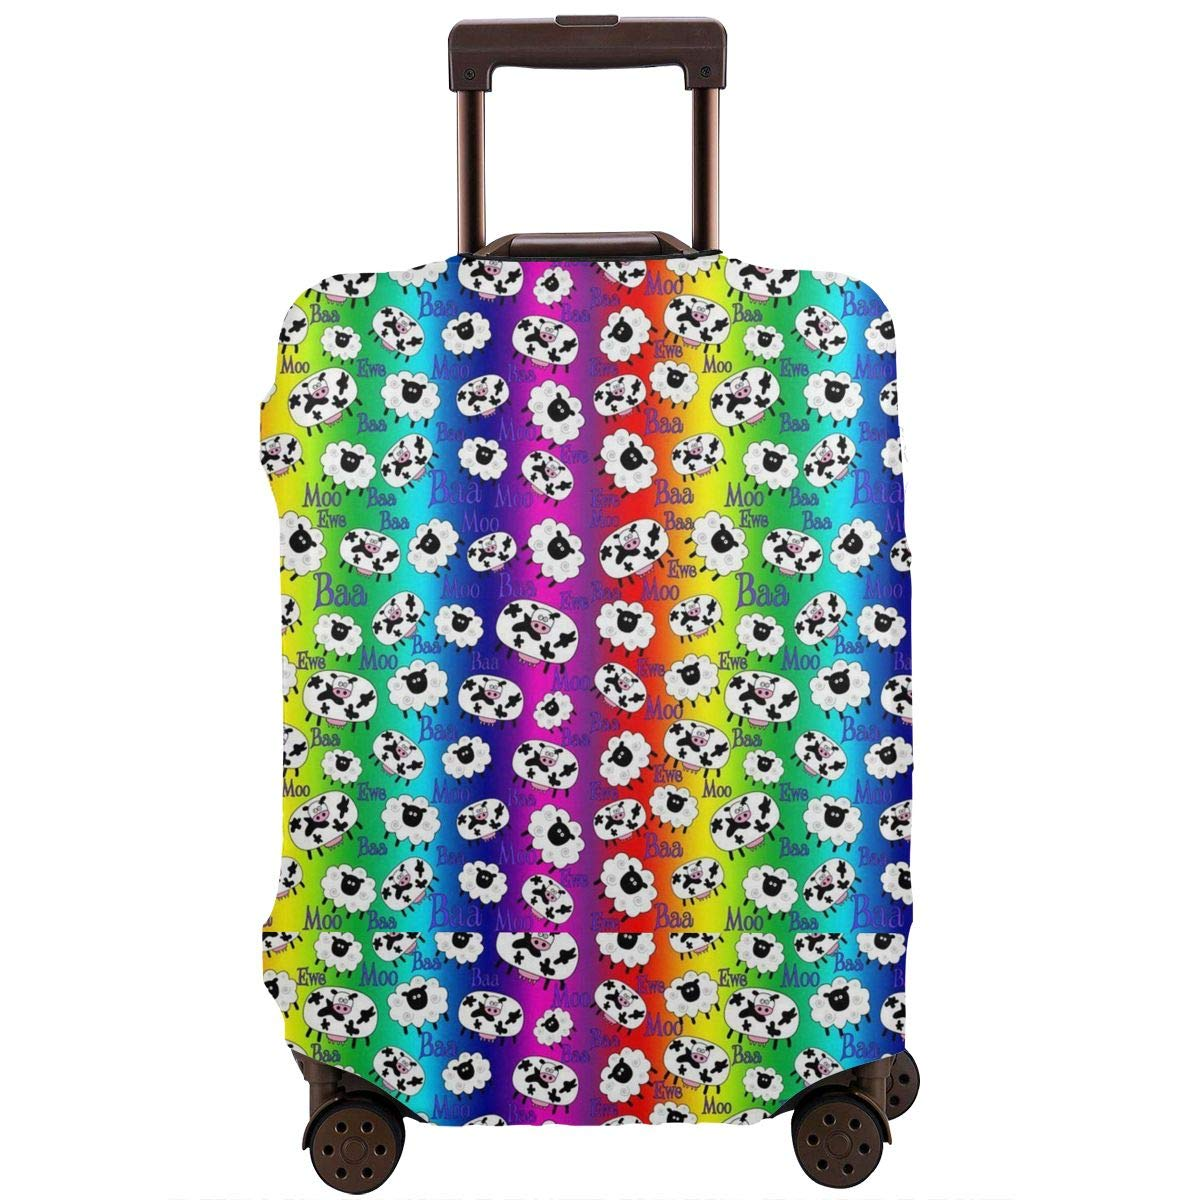 4 Size Sheep And Cow Rainbow Printed Business Luggage Protector Travel Baggage Suitcase Cover